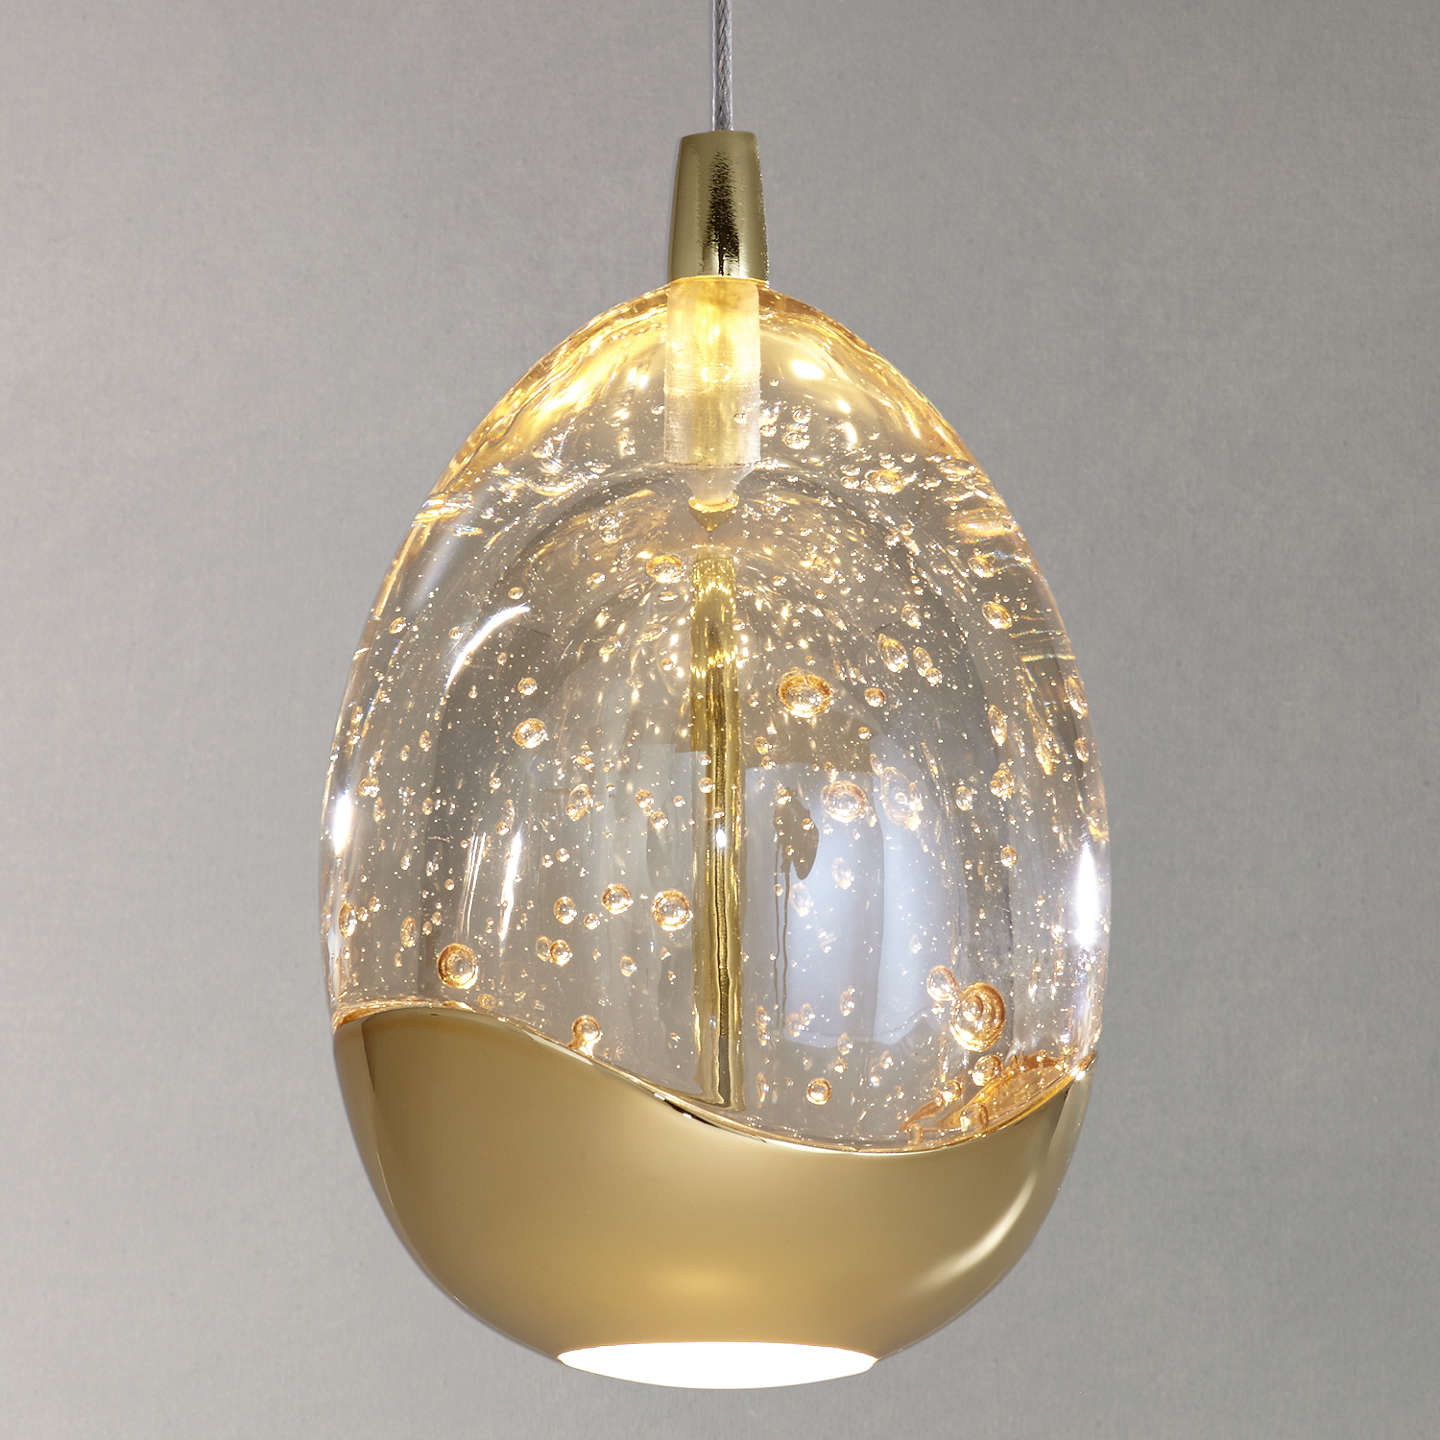 John lewis droplet led single pendant ceiling light at john lewis buyjohn lewis droplet led single pendant ceiling light satin gold online at johnlewis mozeypictures Image collections